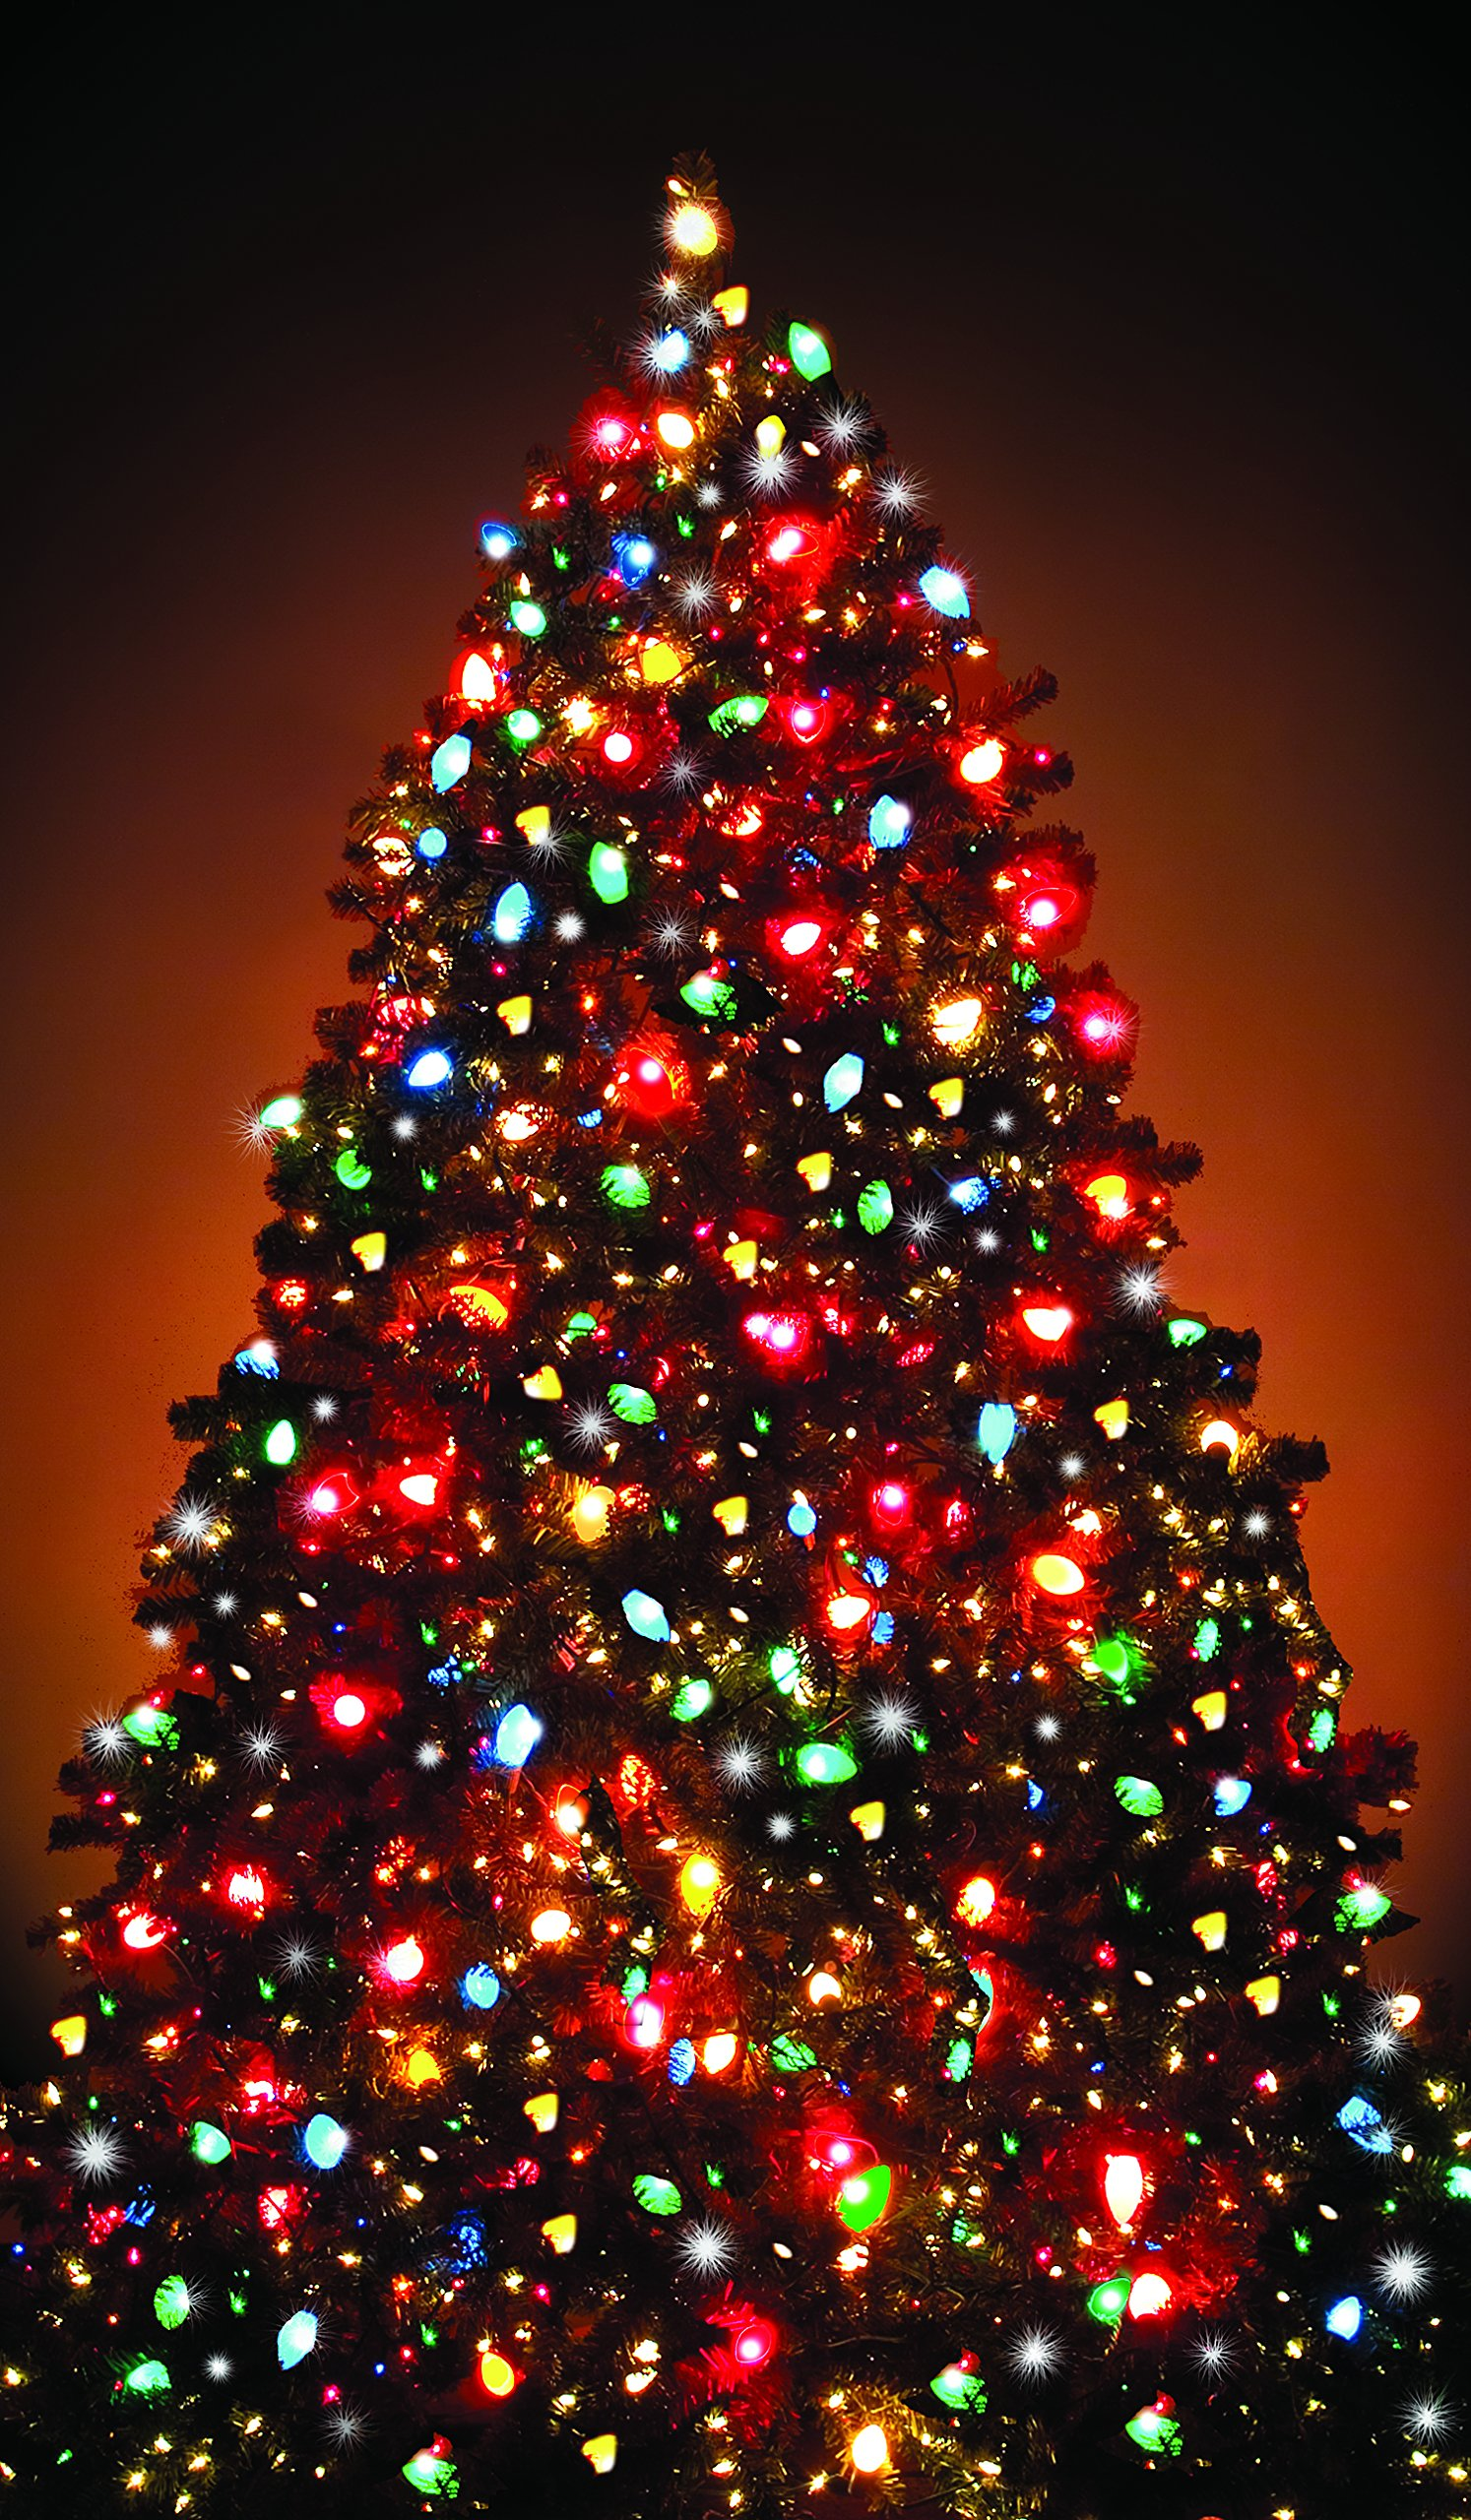 WOWindow Posters Christmas Tree Window Decoration 34.5''x60'' Backlit Poster